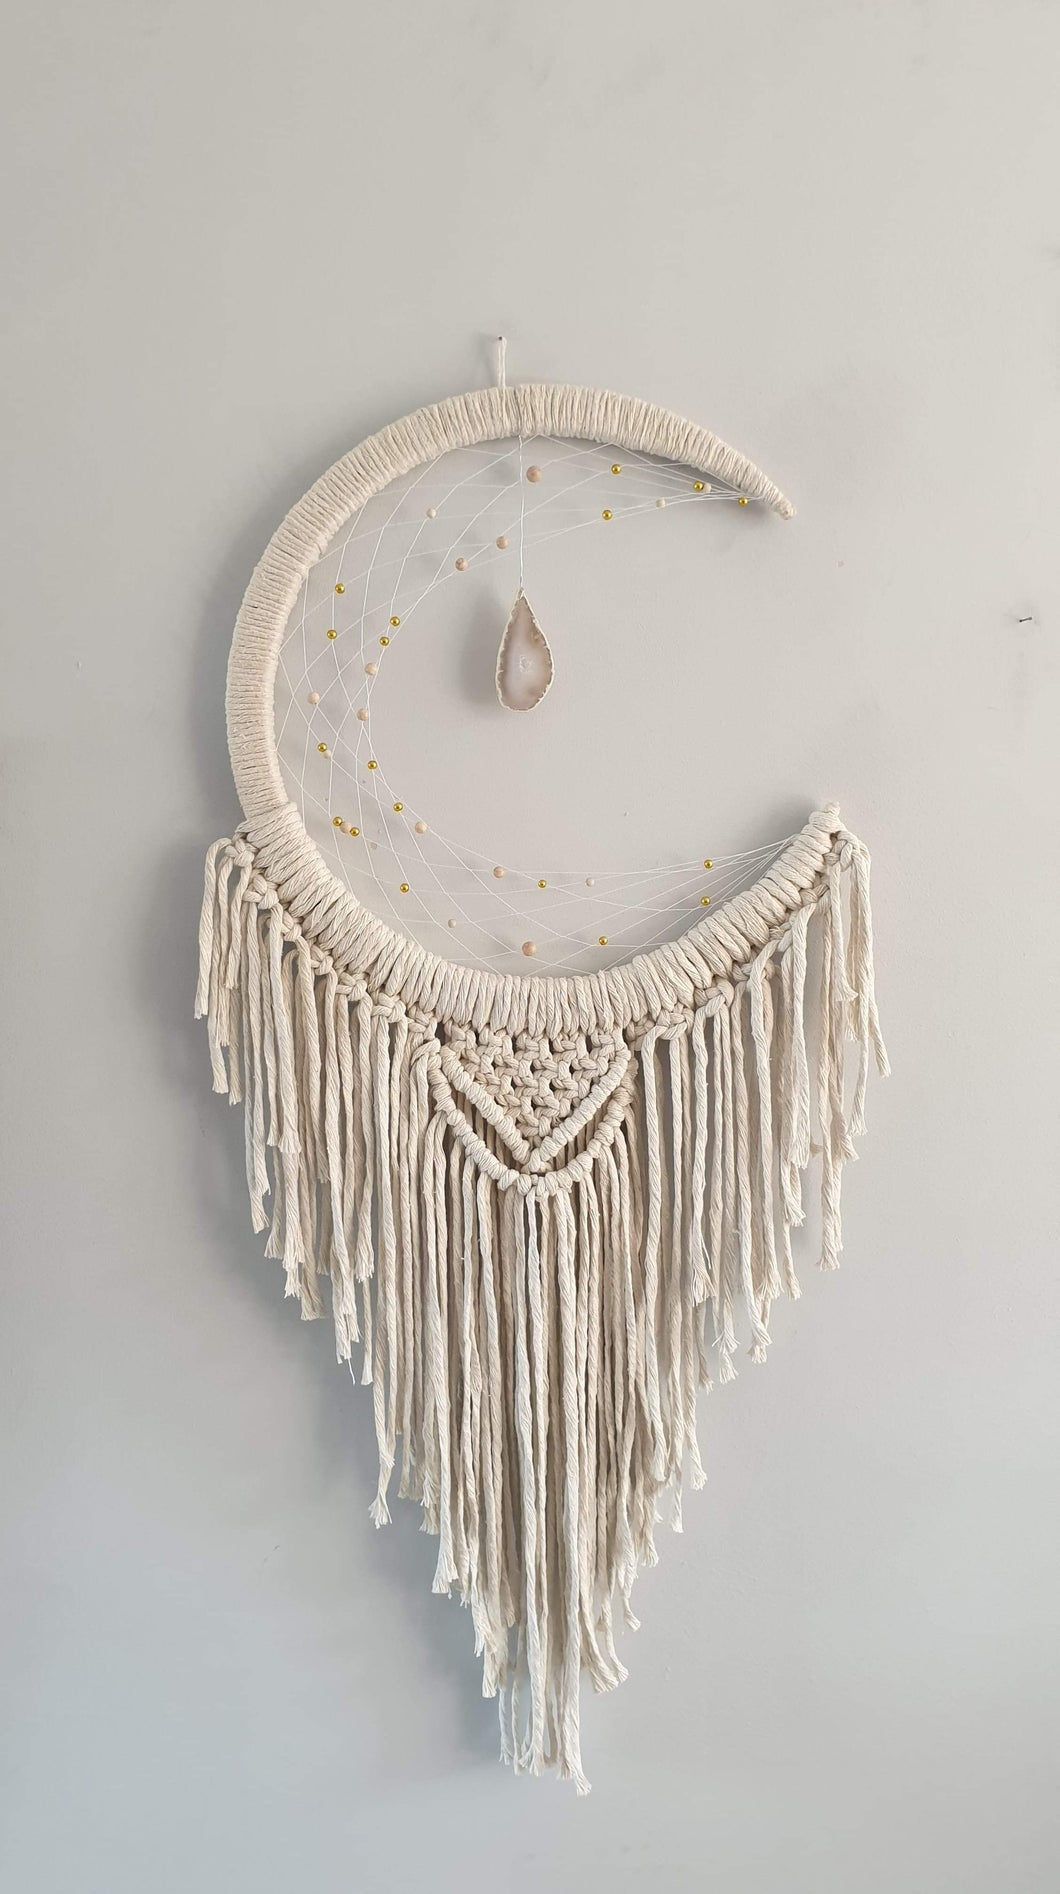 Moon catcher with stunning crystal and beads